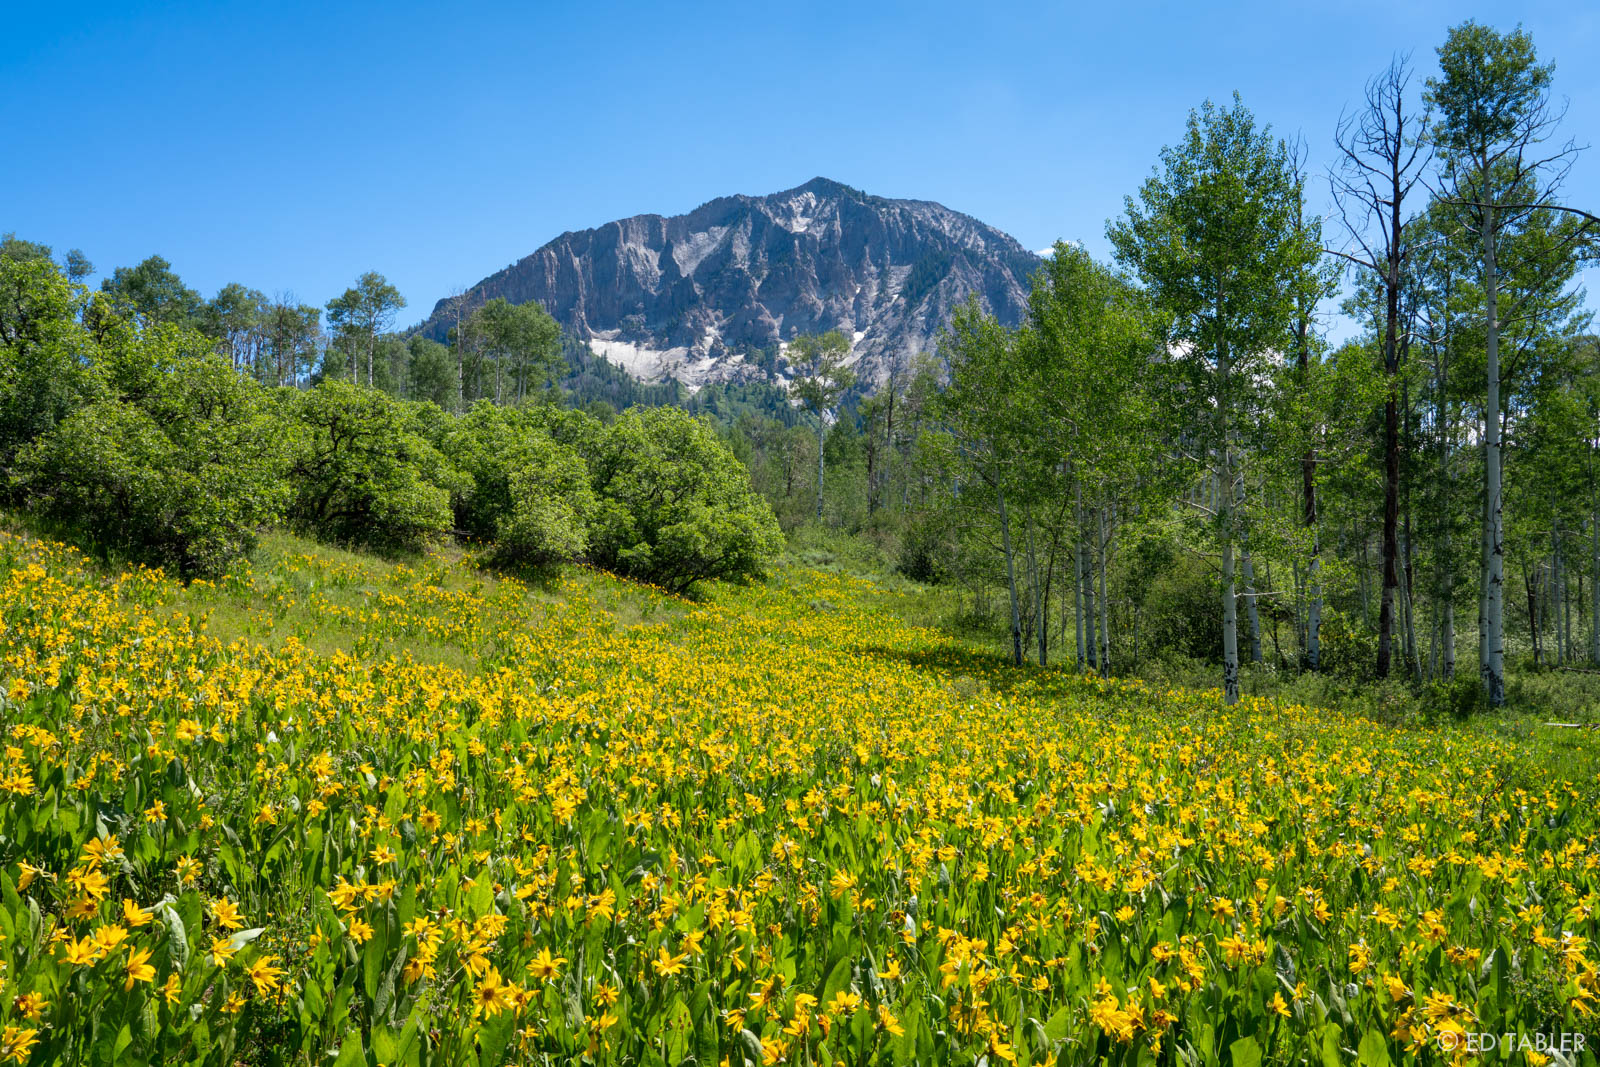 A veritable river of brilliant yellow mule ears appears to flow from Marcellina Mountain in the back.